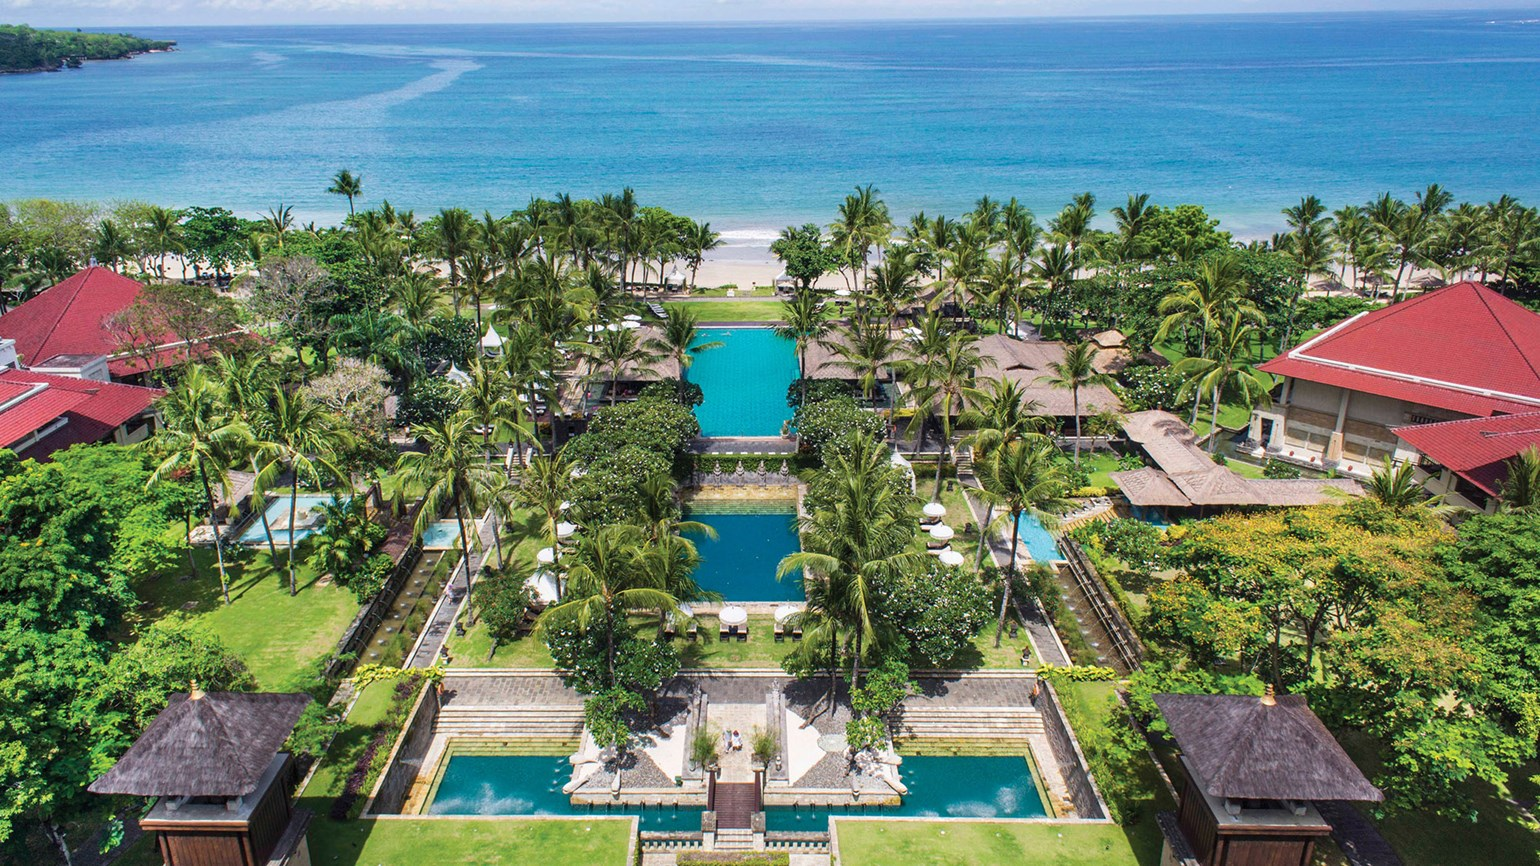 InterContinental Bali: Kids' comfort